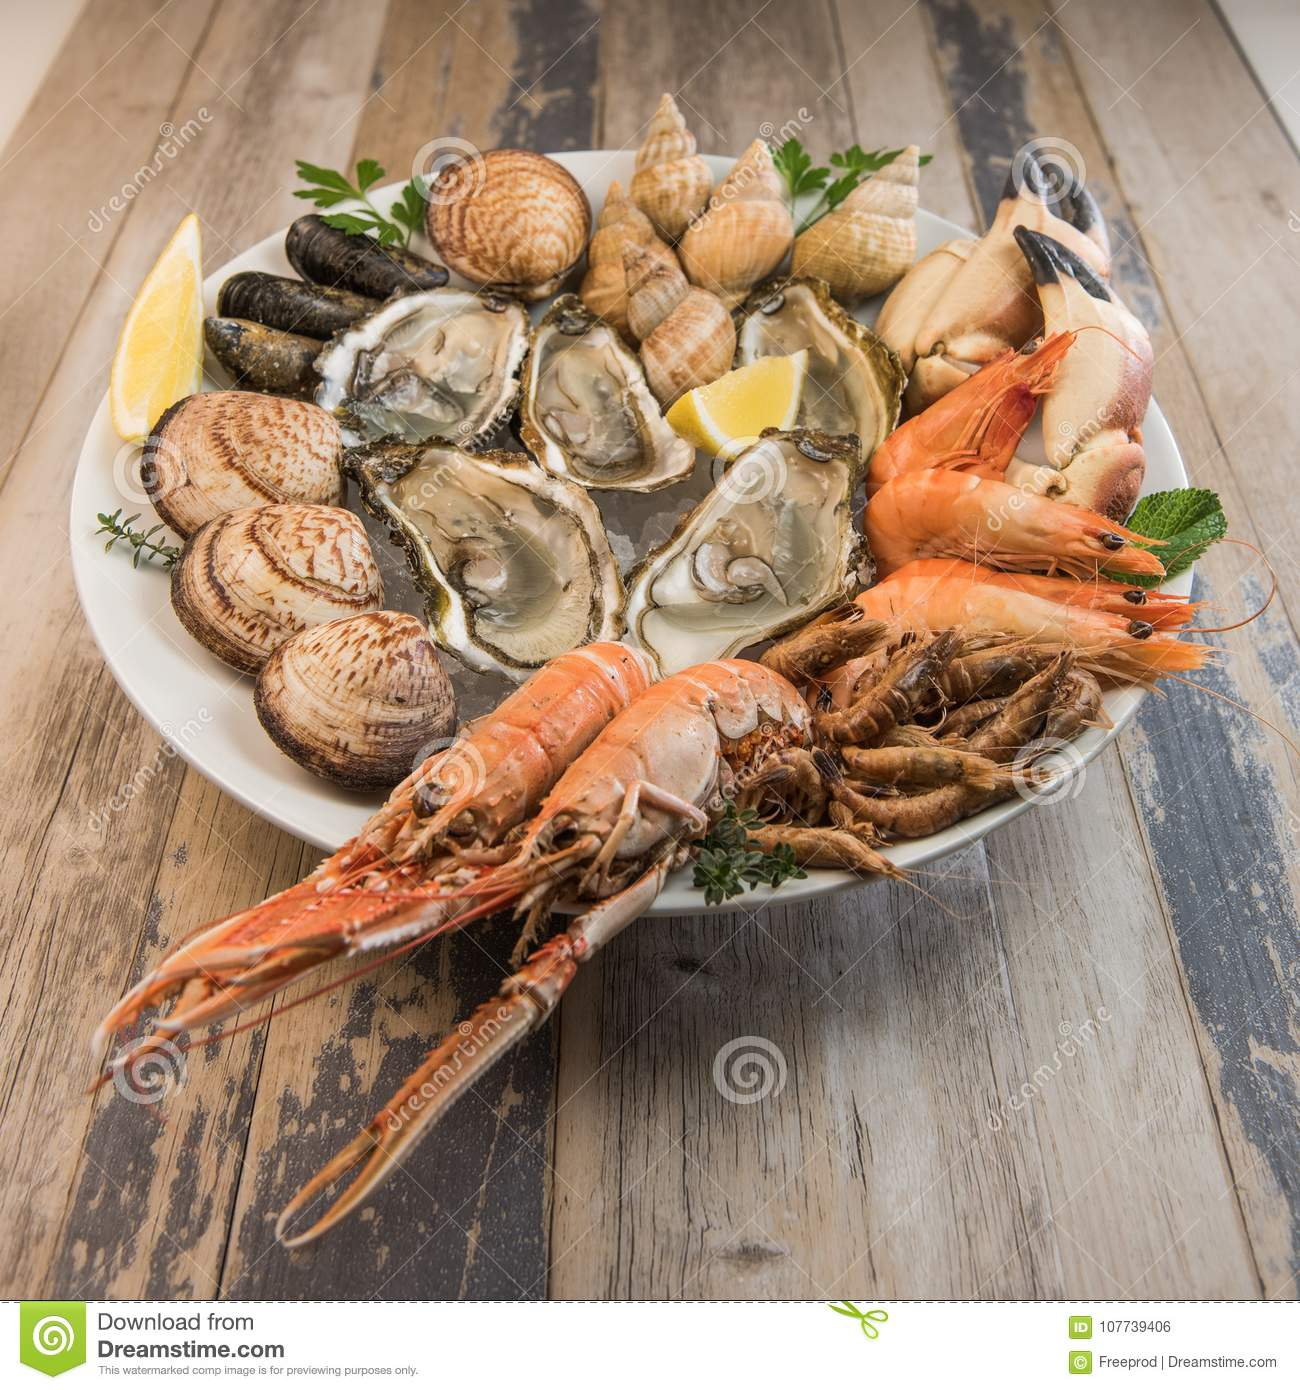 Fresh Seafood Platter With Lobster Mussels And Oysters Stock Photo Image Of Meal Presentation 107739406